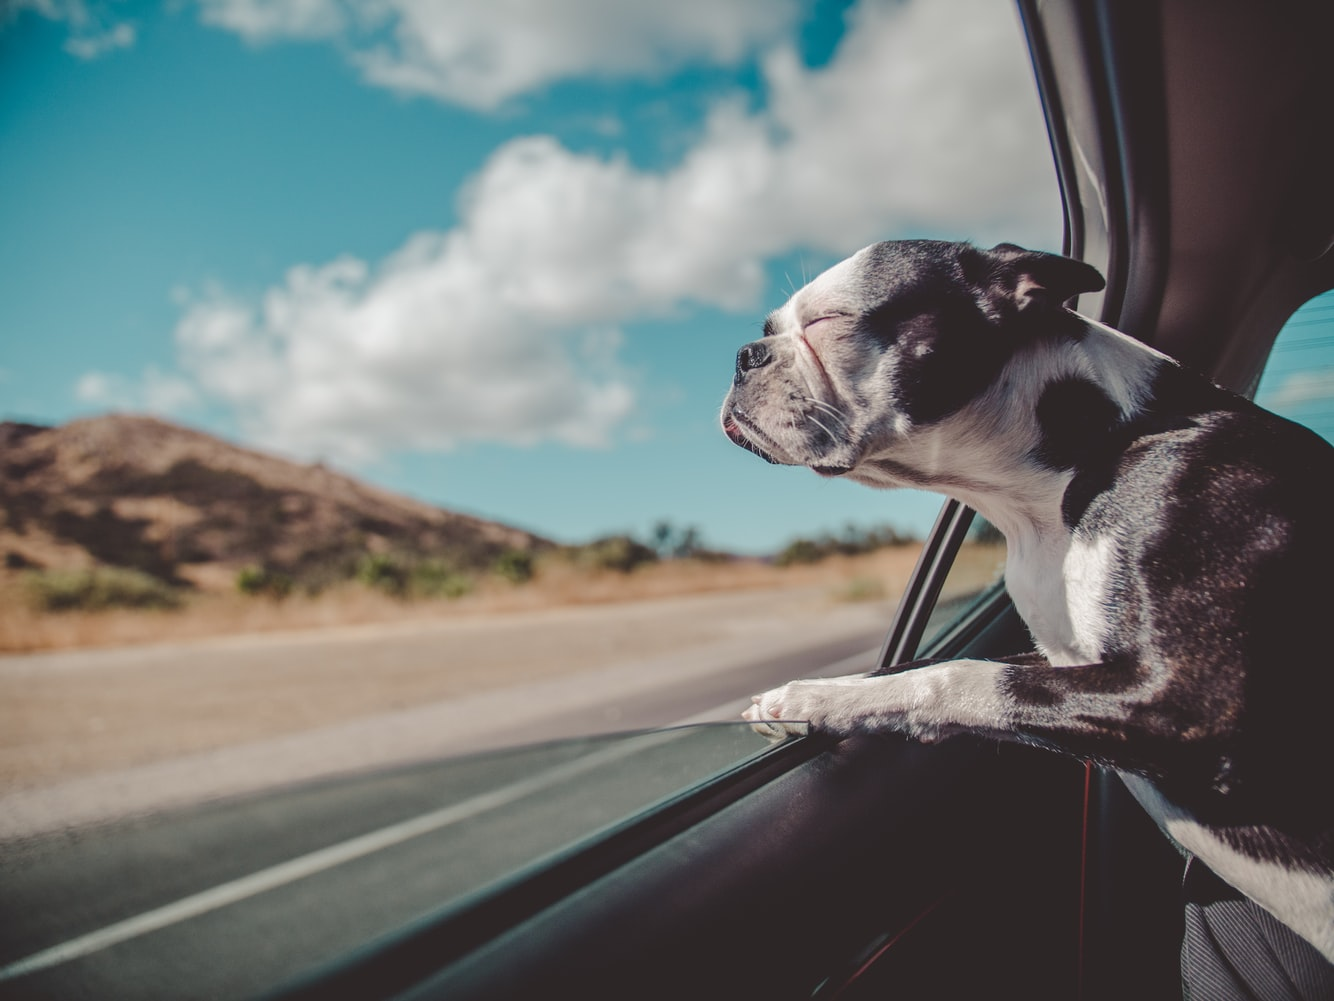 Dog closing his eyes with head out the window of the car